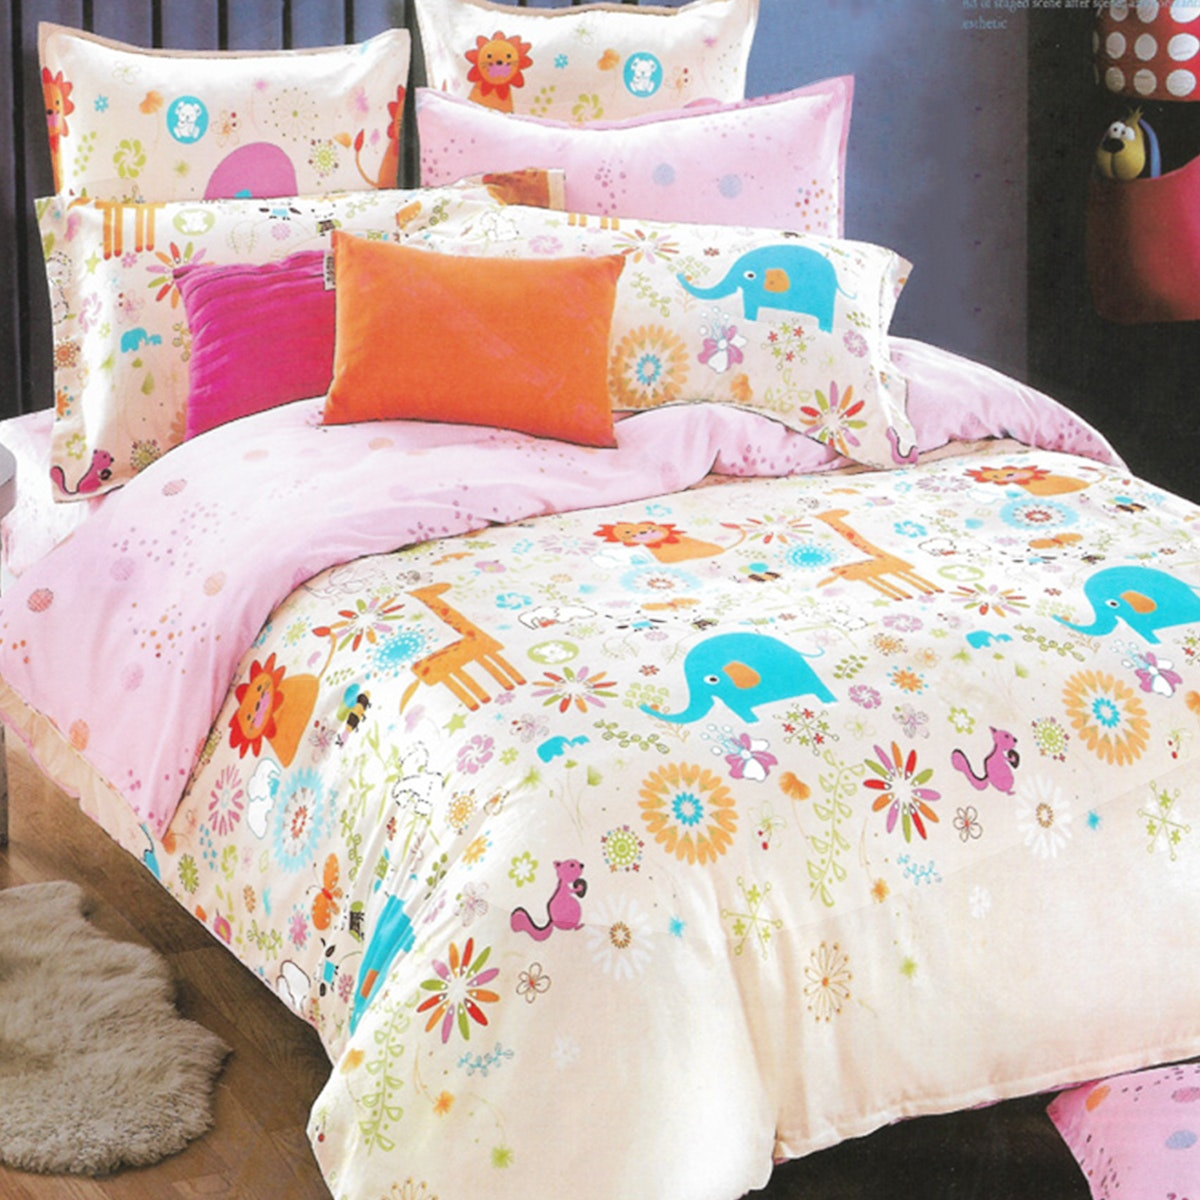 Sleep Buddy Set Sprei dan bed cover Animal Pigmen Katun 200x200x30